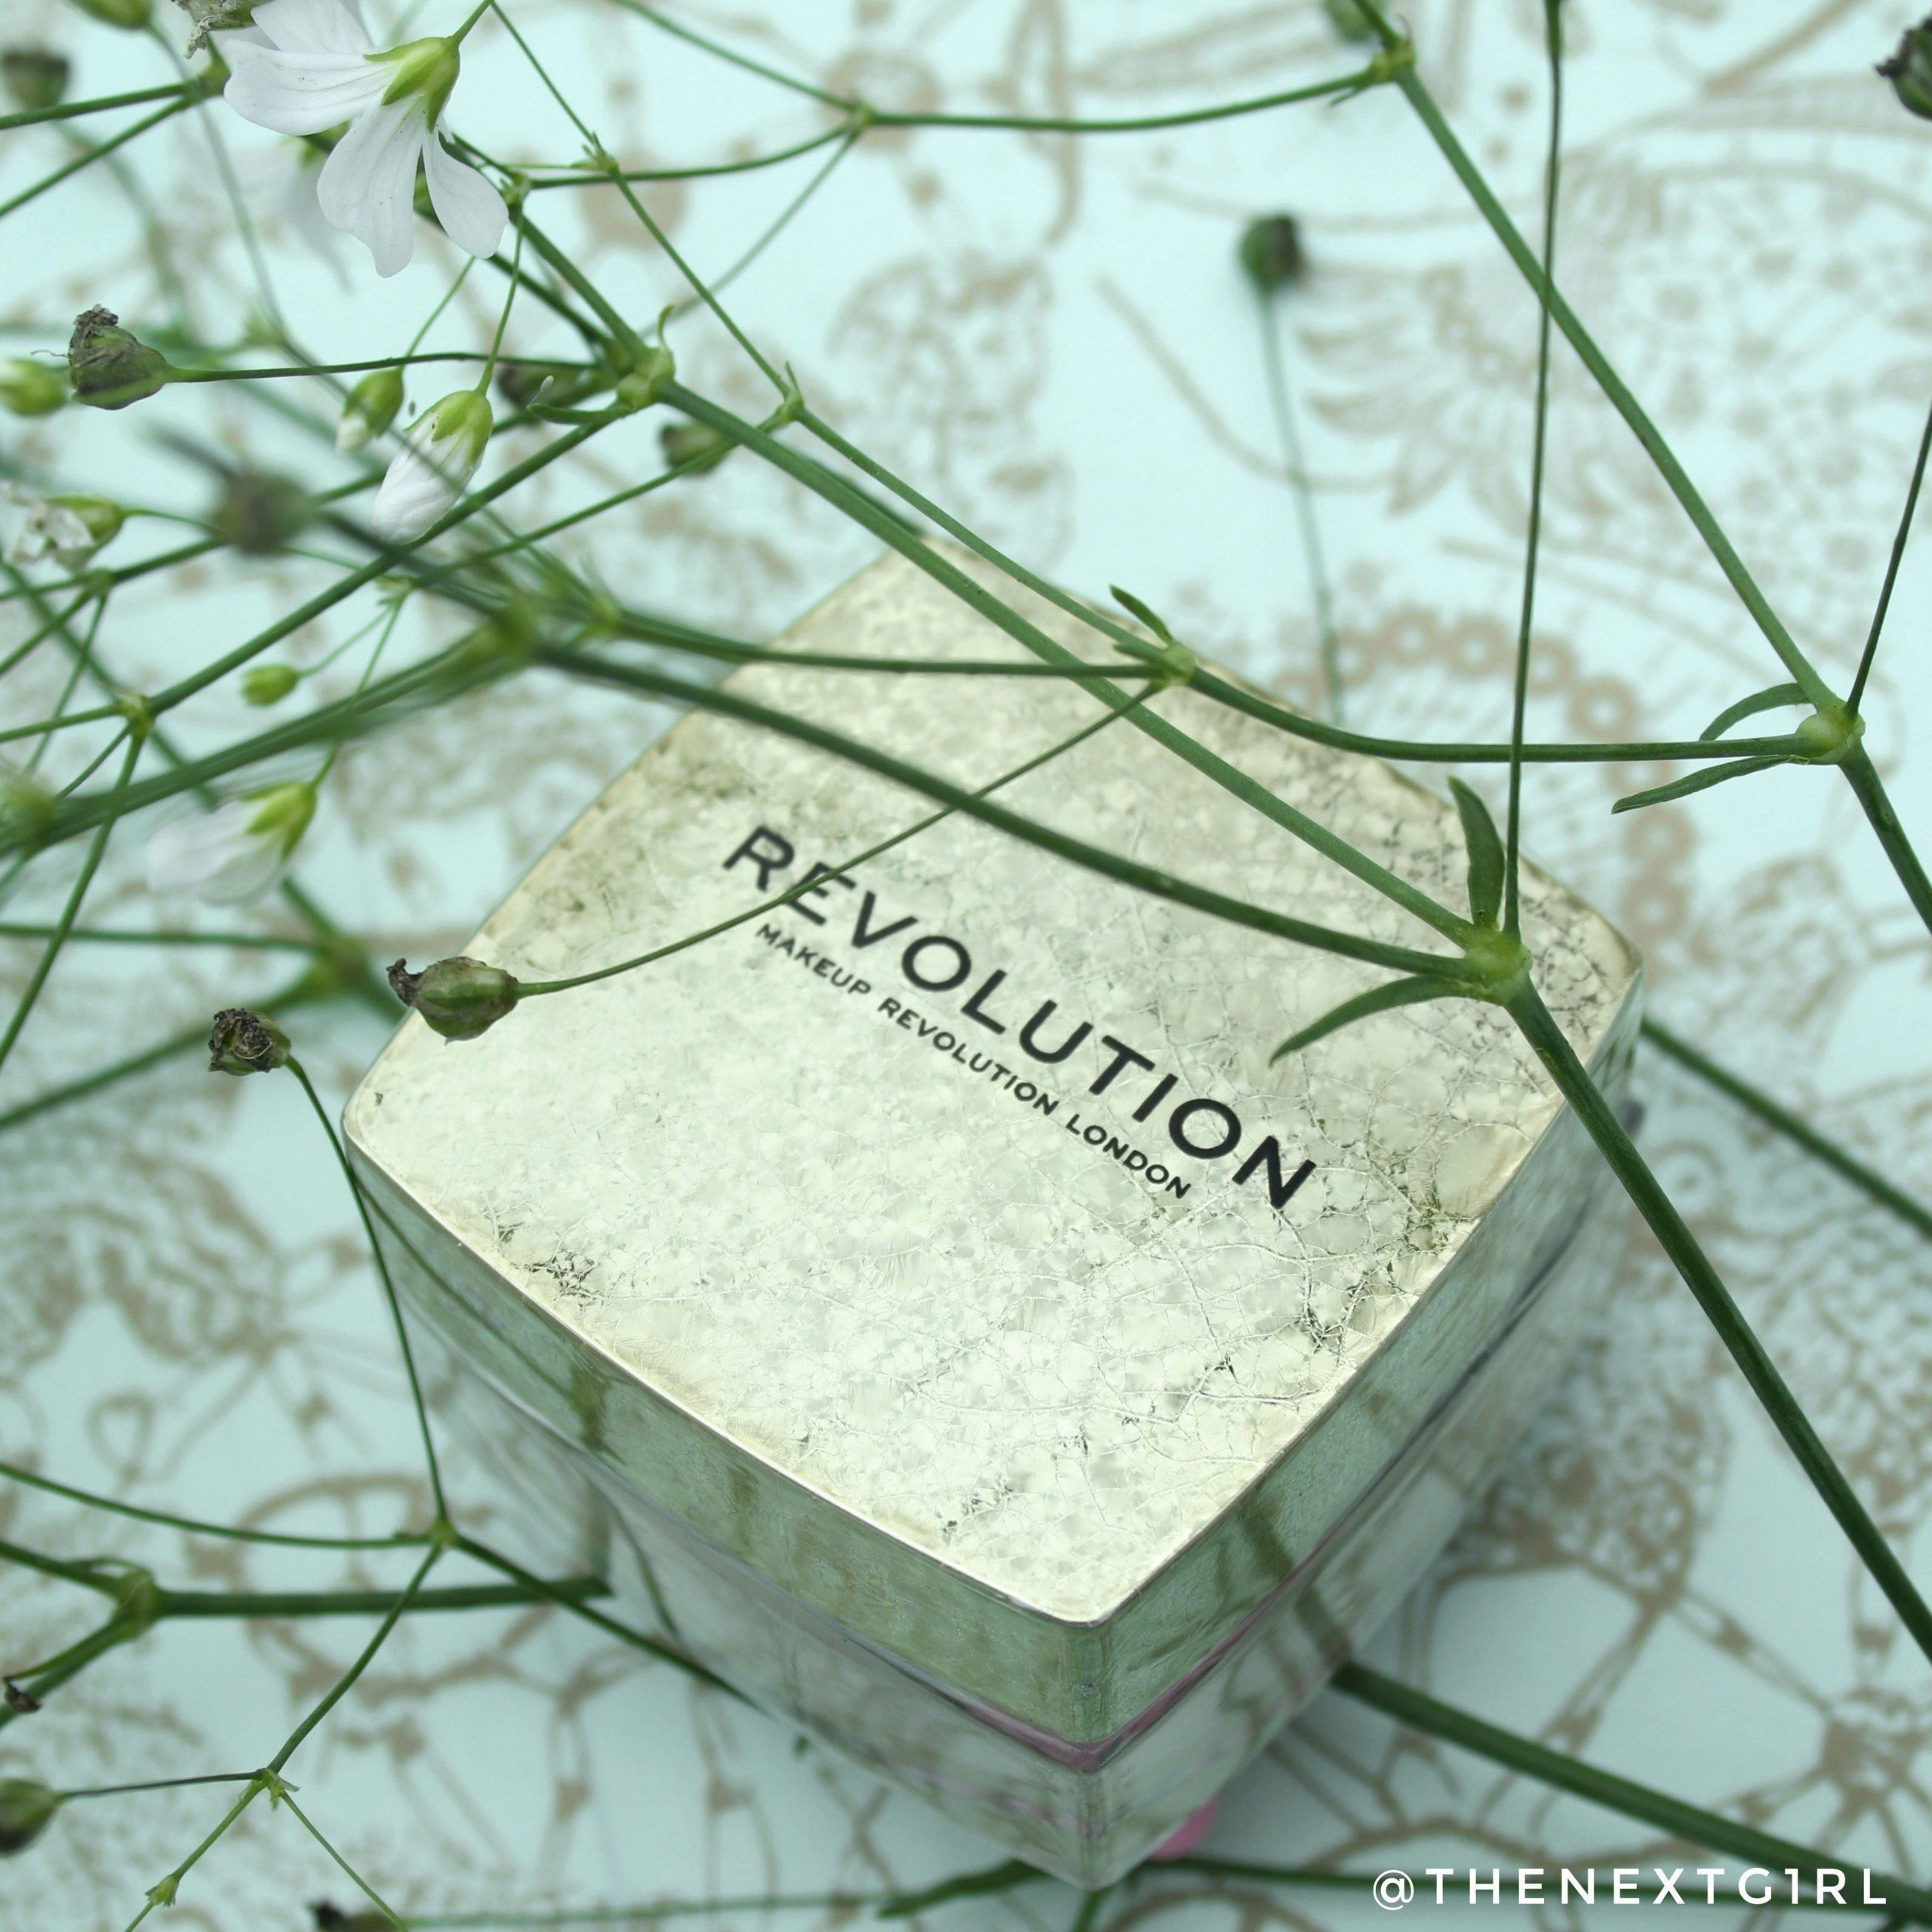 Review: Makeup Revolution Jelly highlighter